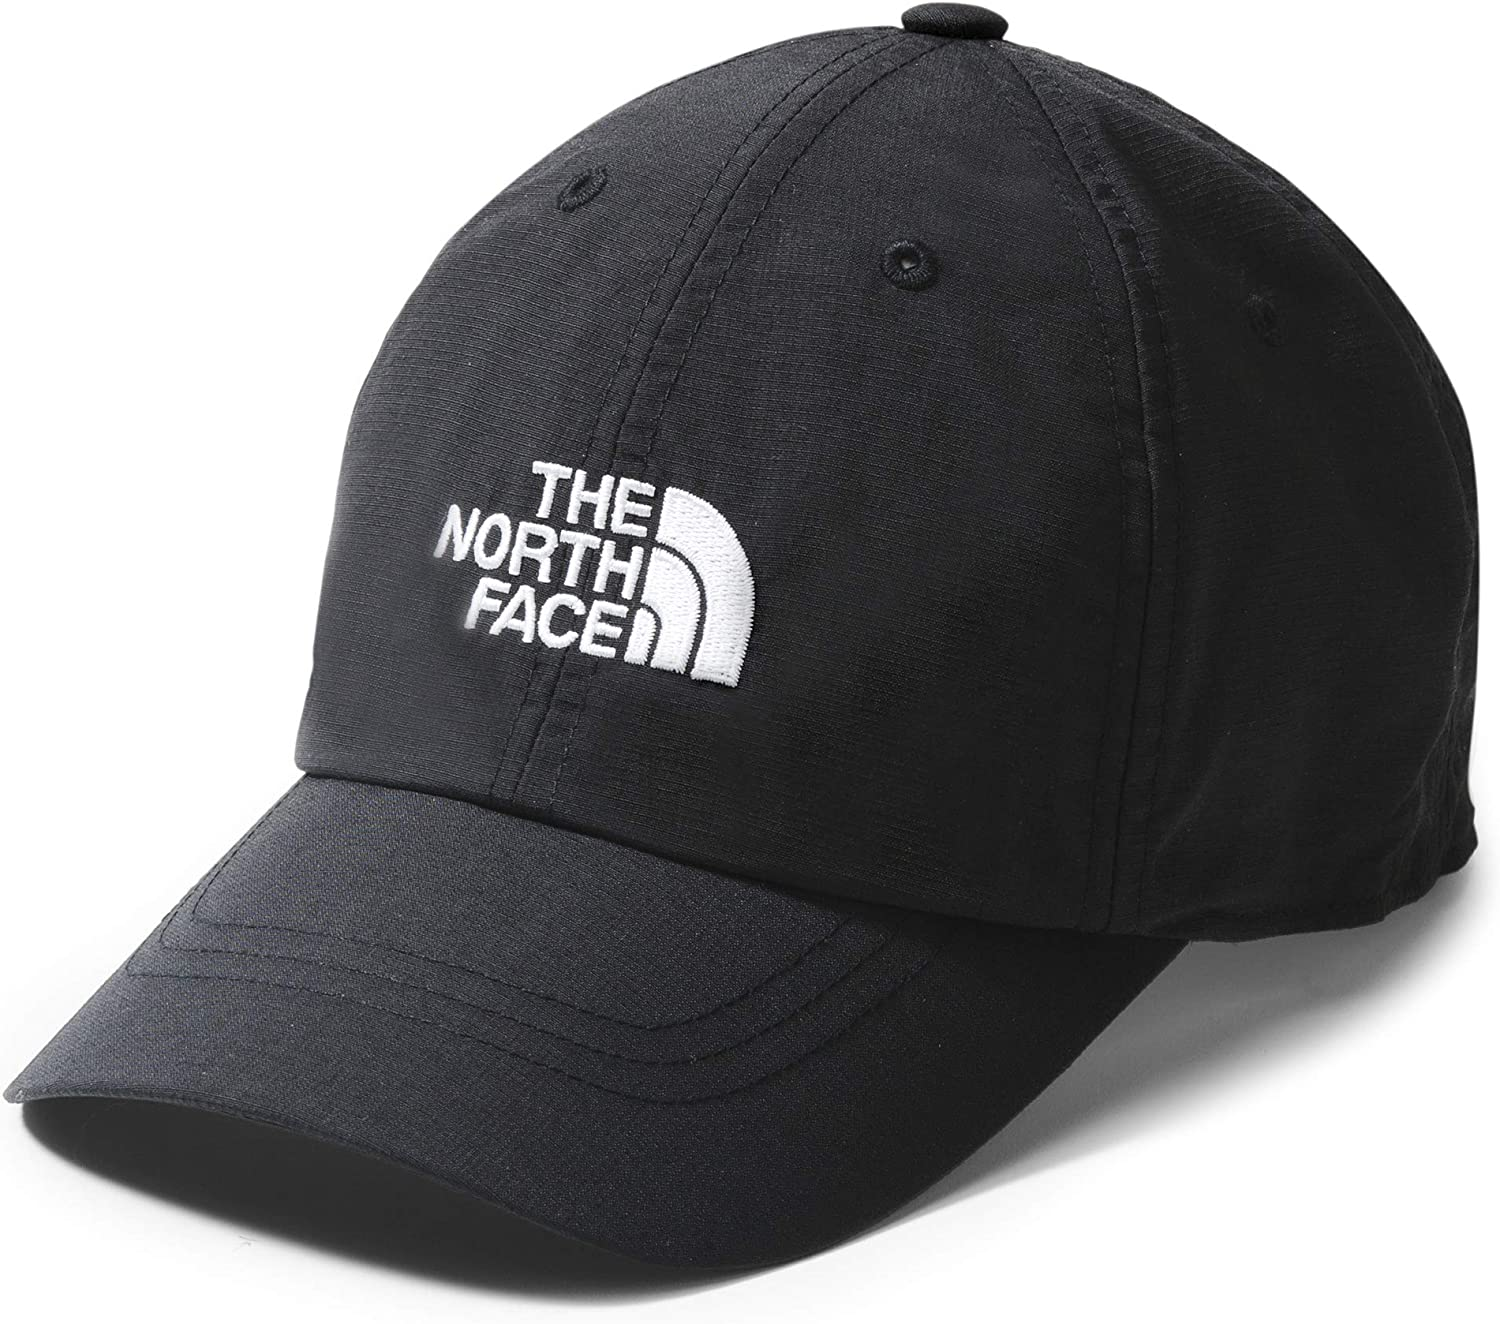 Horizon cap Cappello Unisex Adulto The North Face